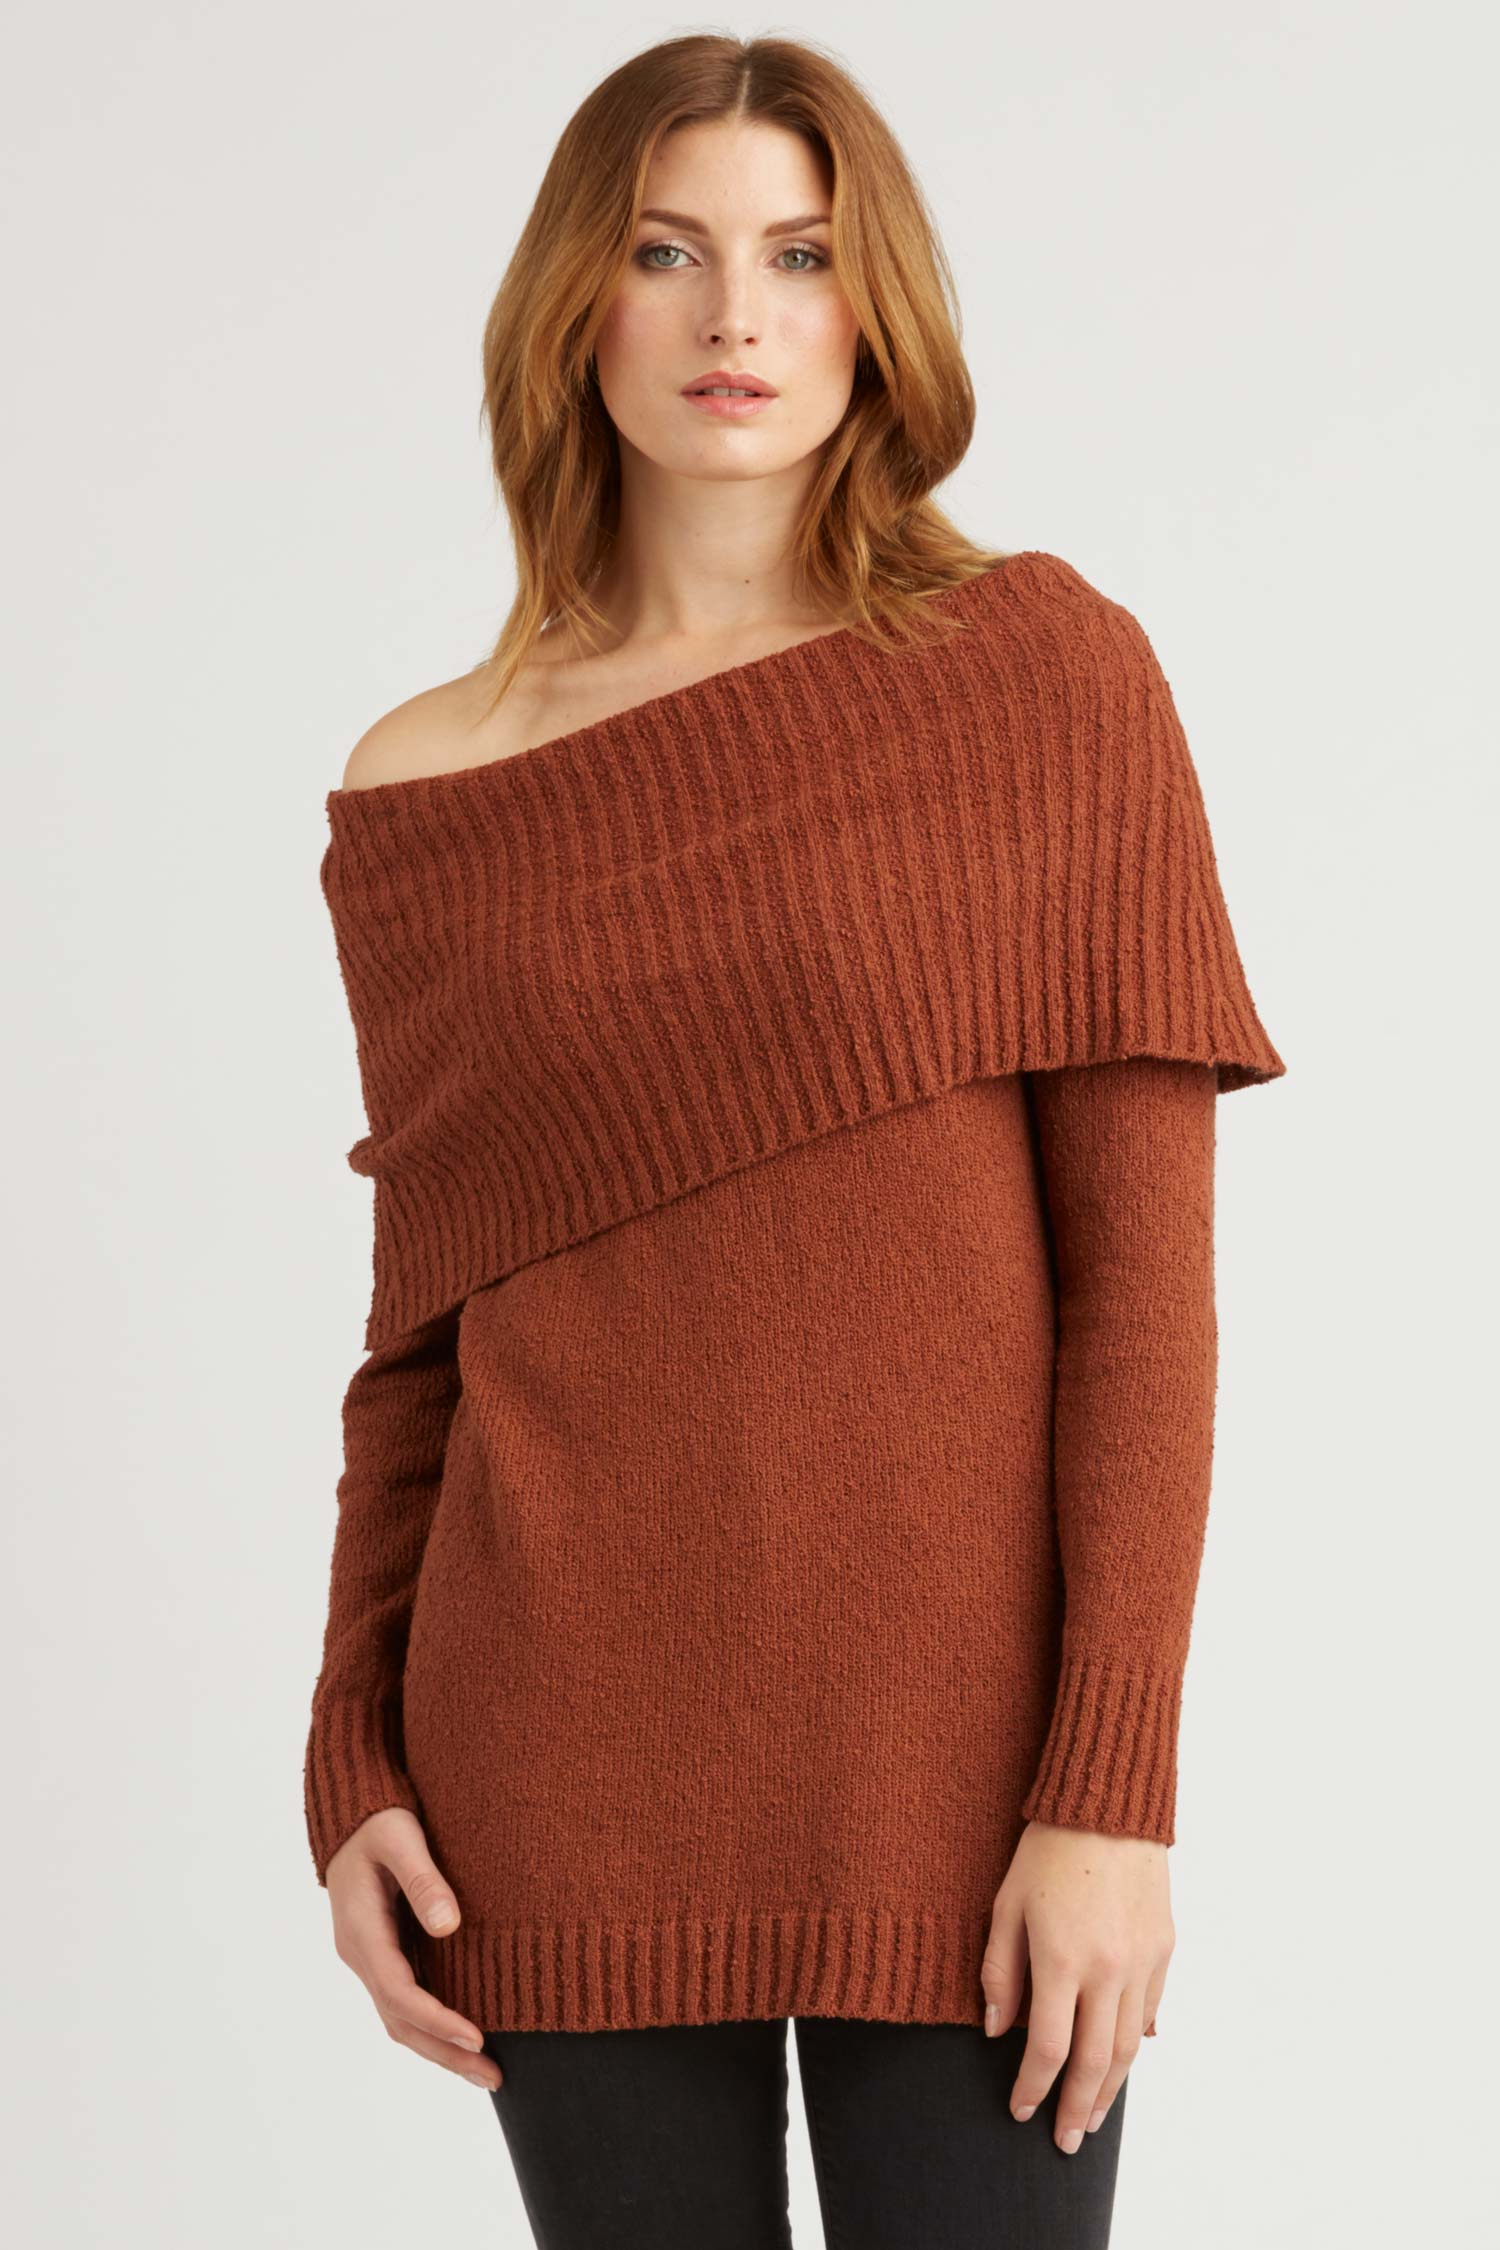 Womens Brown Sweater | Organic Cotton Knit Clothing